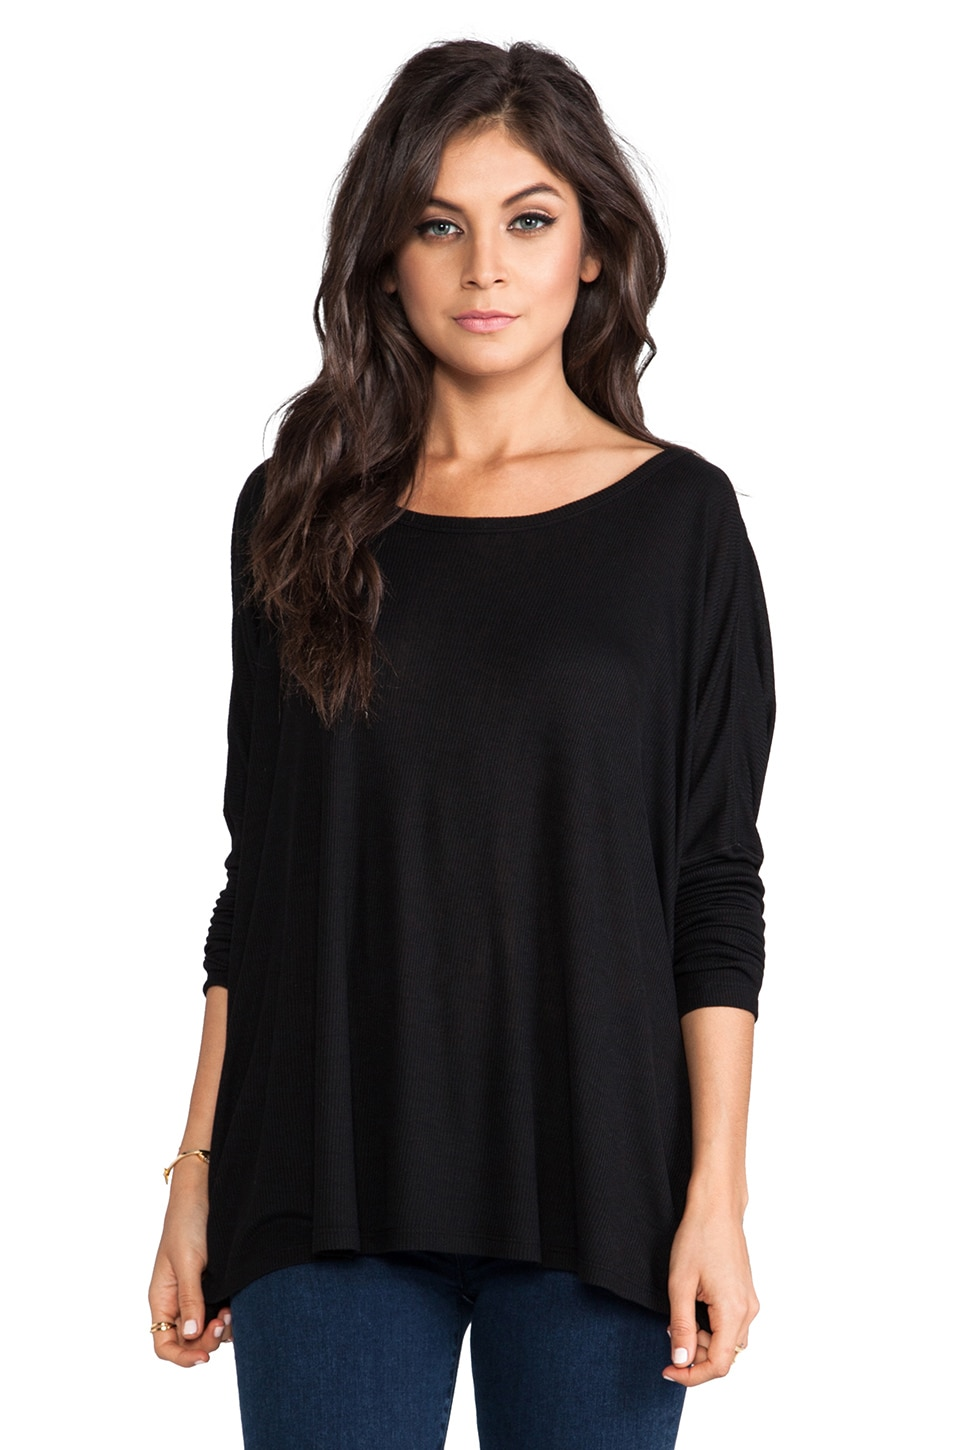 Saint Grace Omega Oversized Top in Black